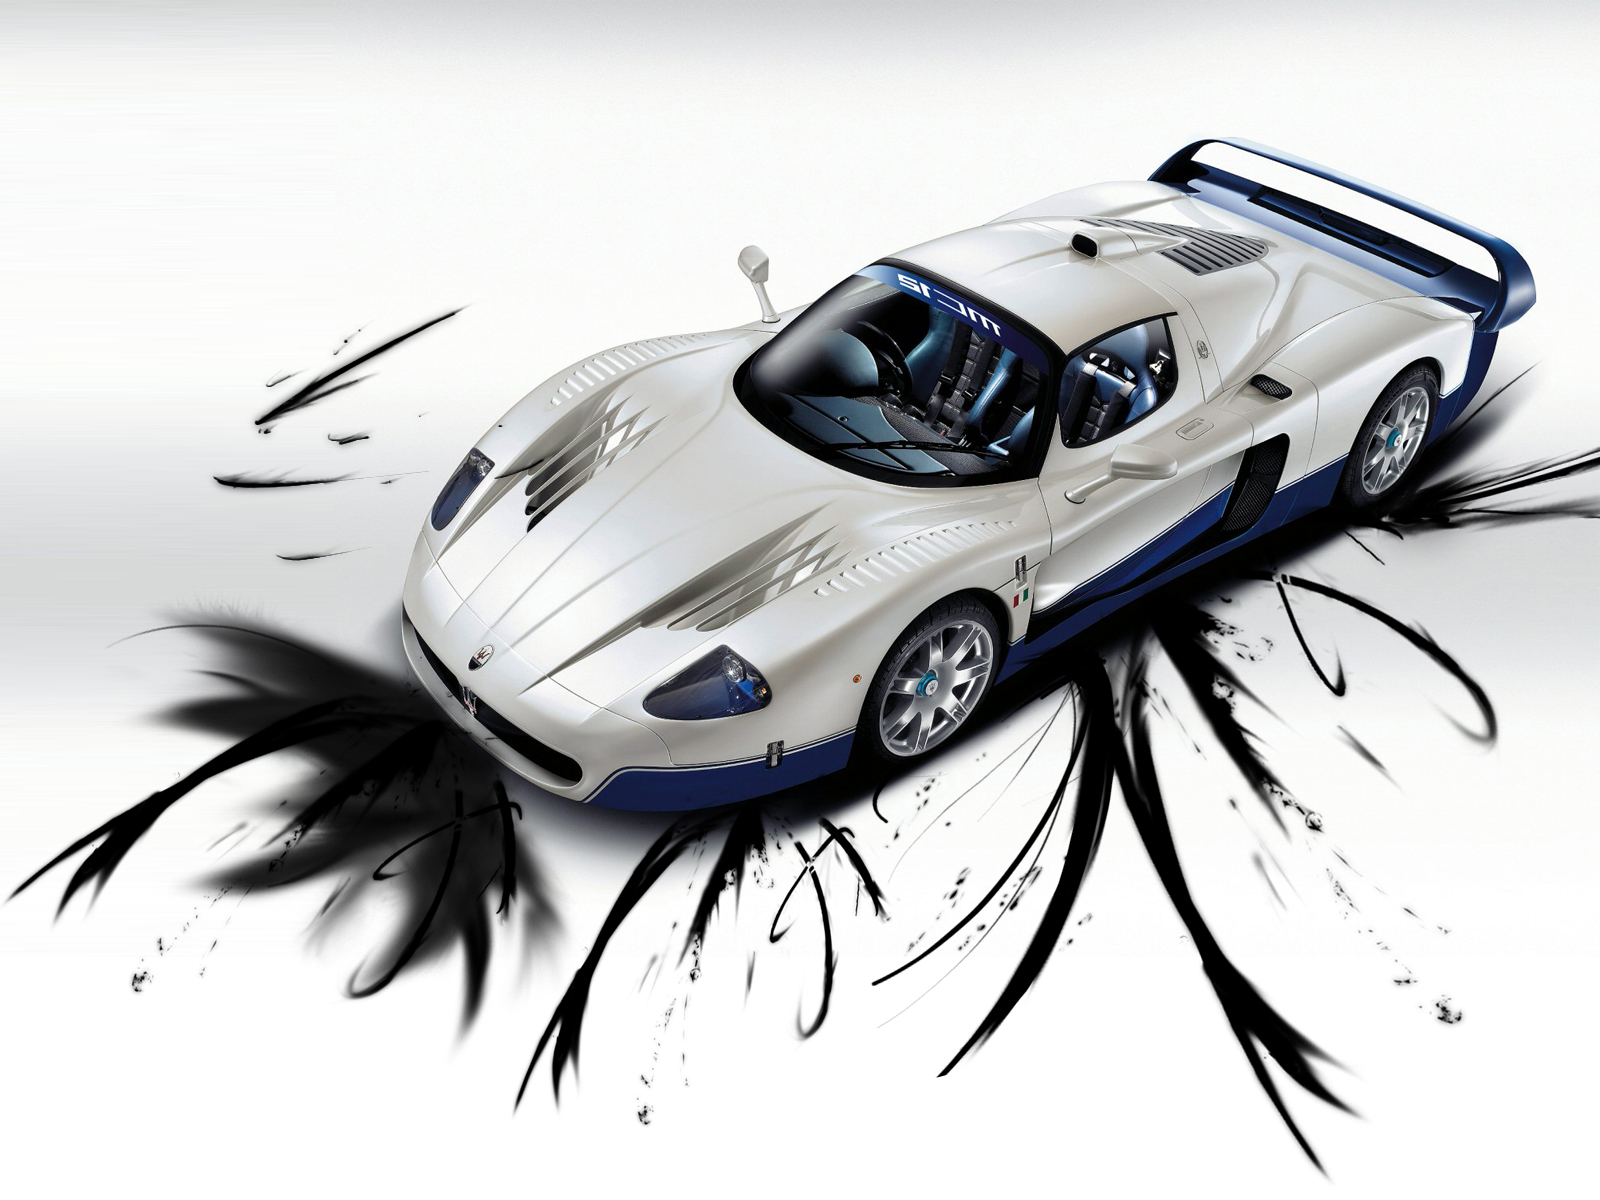 Wallpapers Facebook Cover Animated Car Wallpaper: Cool